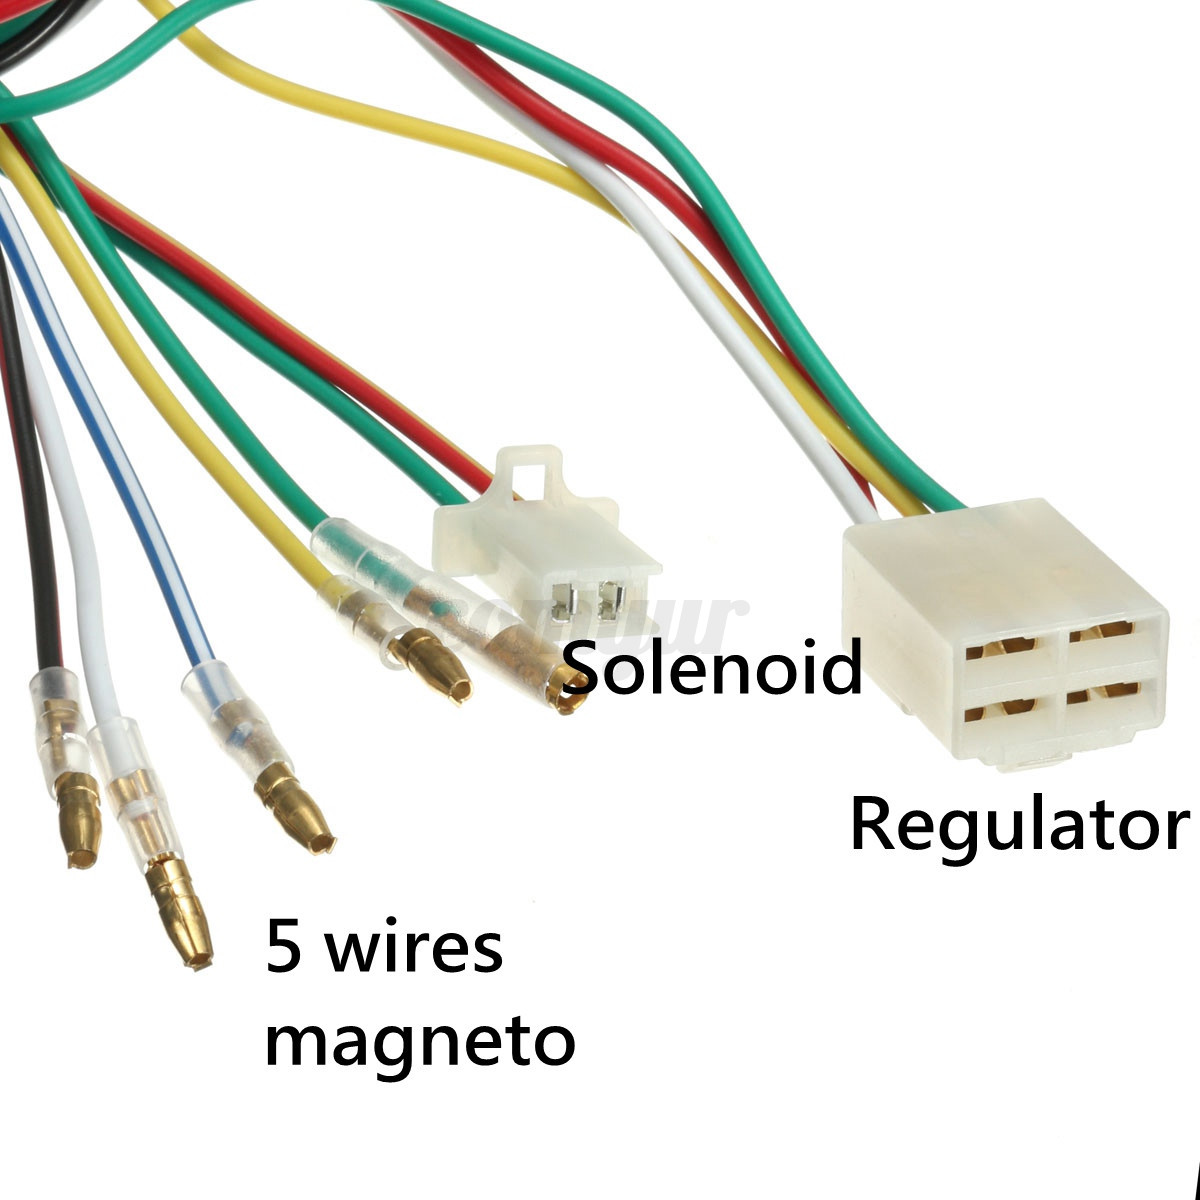 F F D A D De Cf Cd Ed A Cd D C A C D Cf C C D F A Dcc Dcb F on Bench Test Wiring Diagram 150cc Gy6 Engine